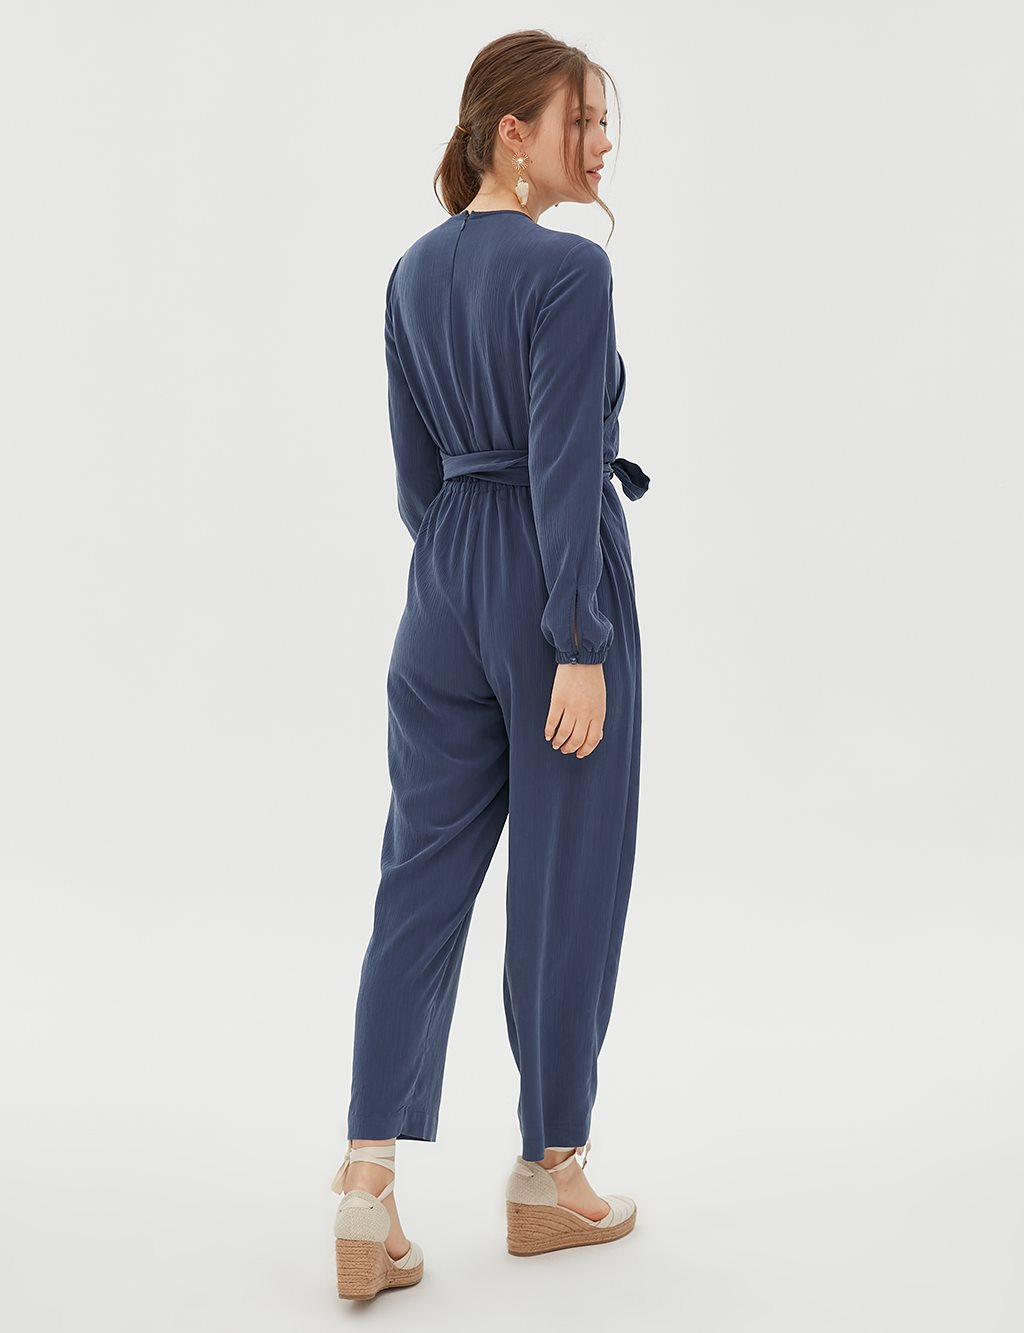 Jumpsuit With Belt B20 22004 Indigo